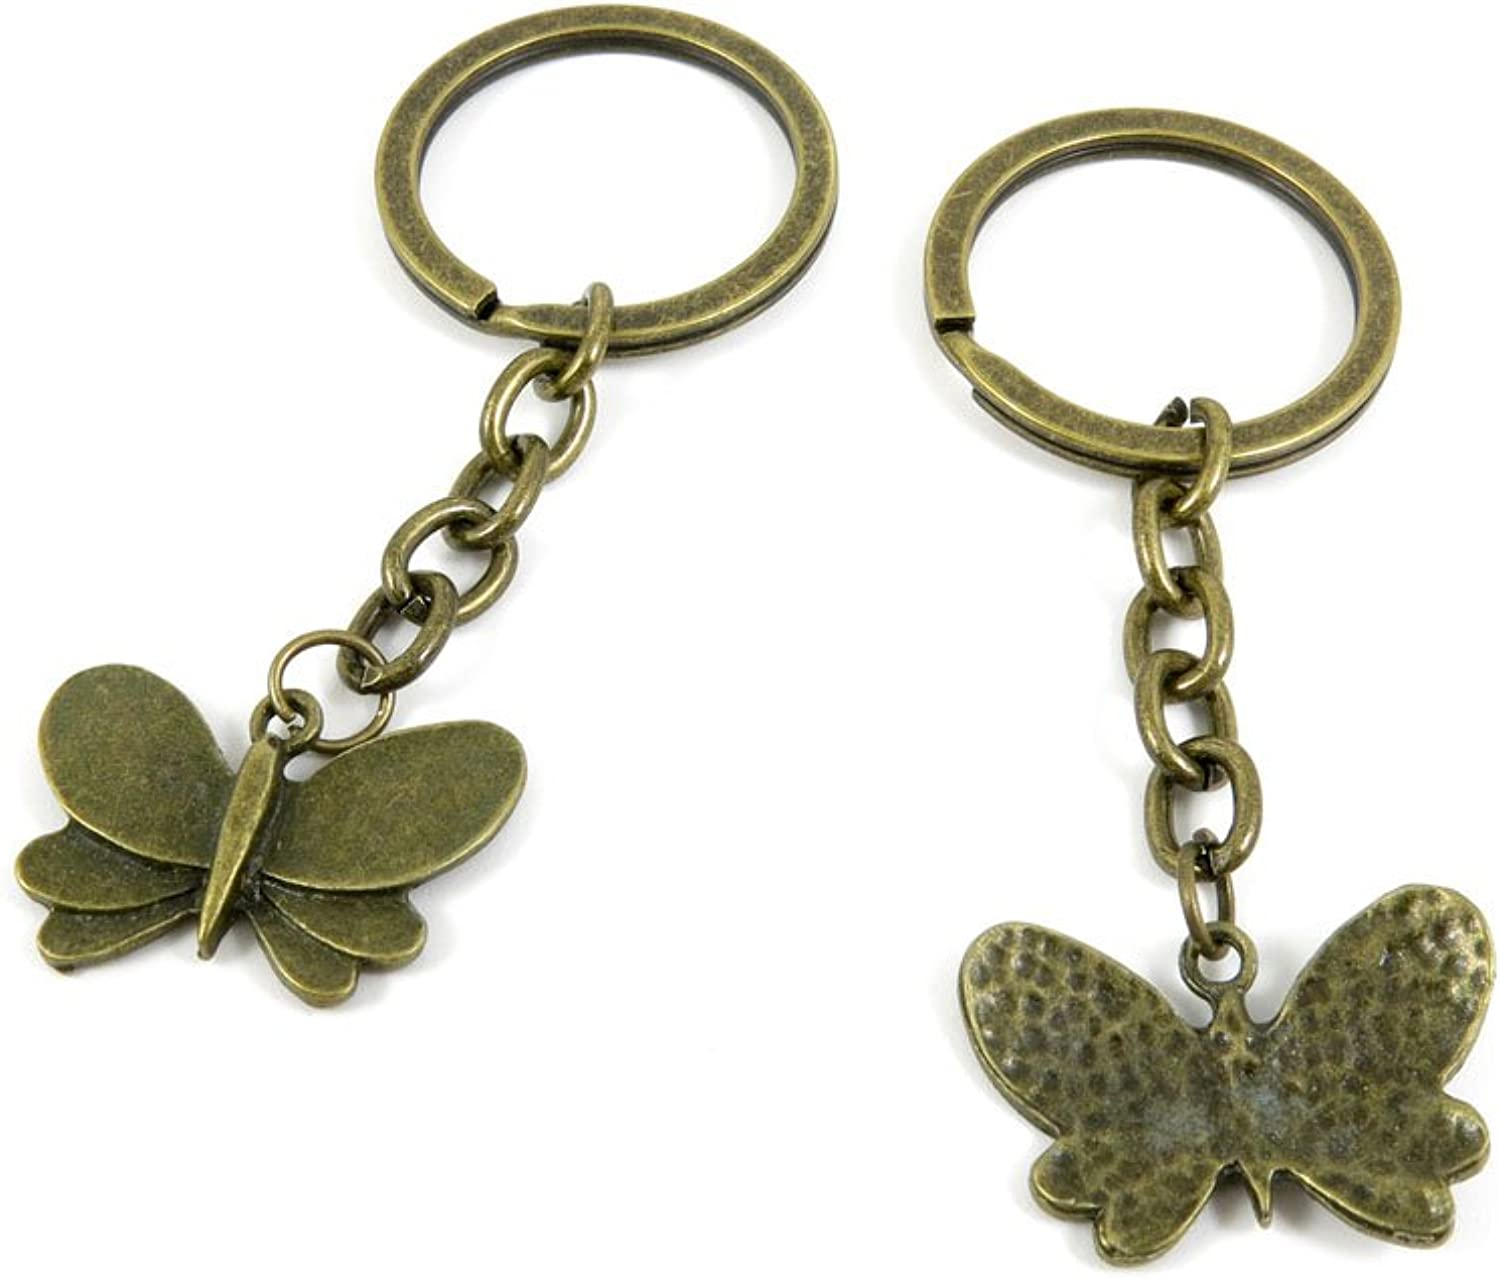 100 PCS Keyrings Keychains Key Ring Chains Tags Jewelry Findings Clasps Buckles Supplies M2QI8 Butterfly